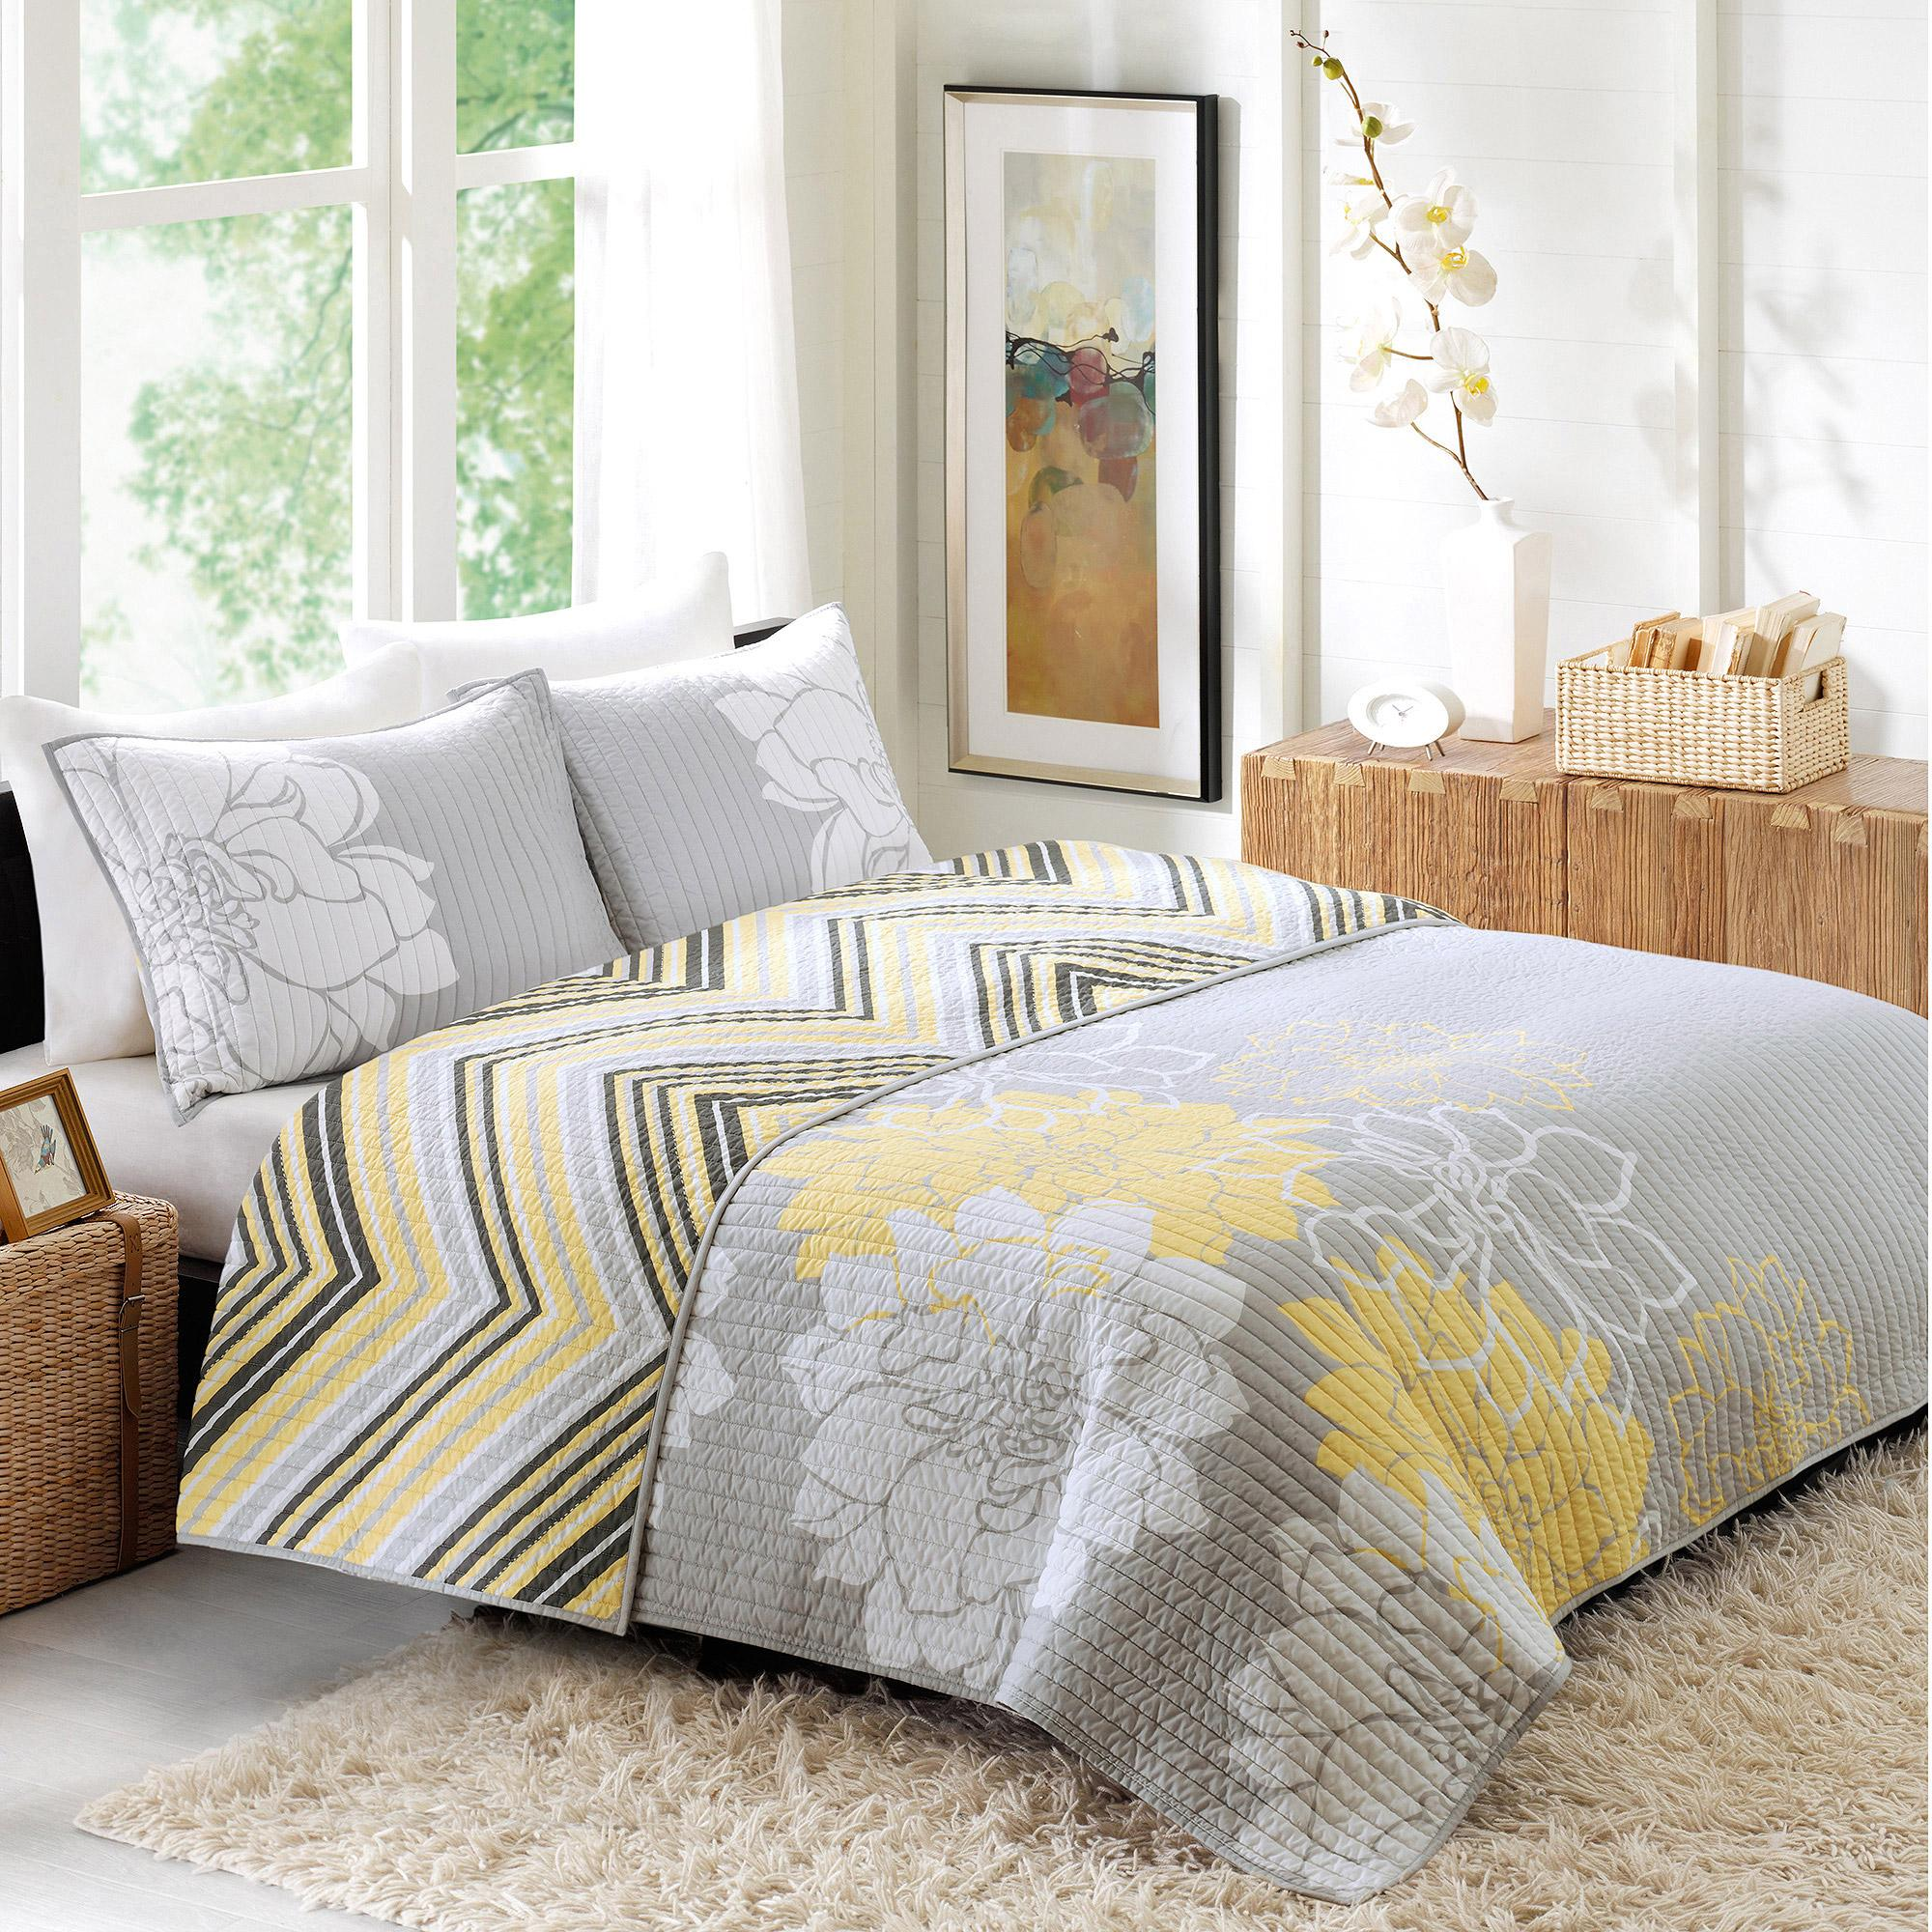 Better homes and gardens comforter sets better homes and gardens regent 7 piece comforter 7 better homes and gardens